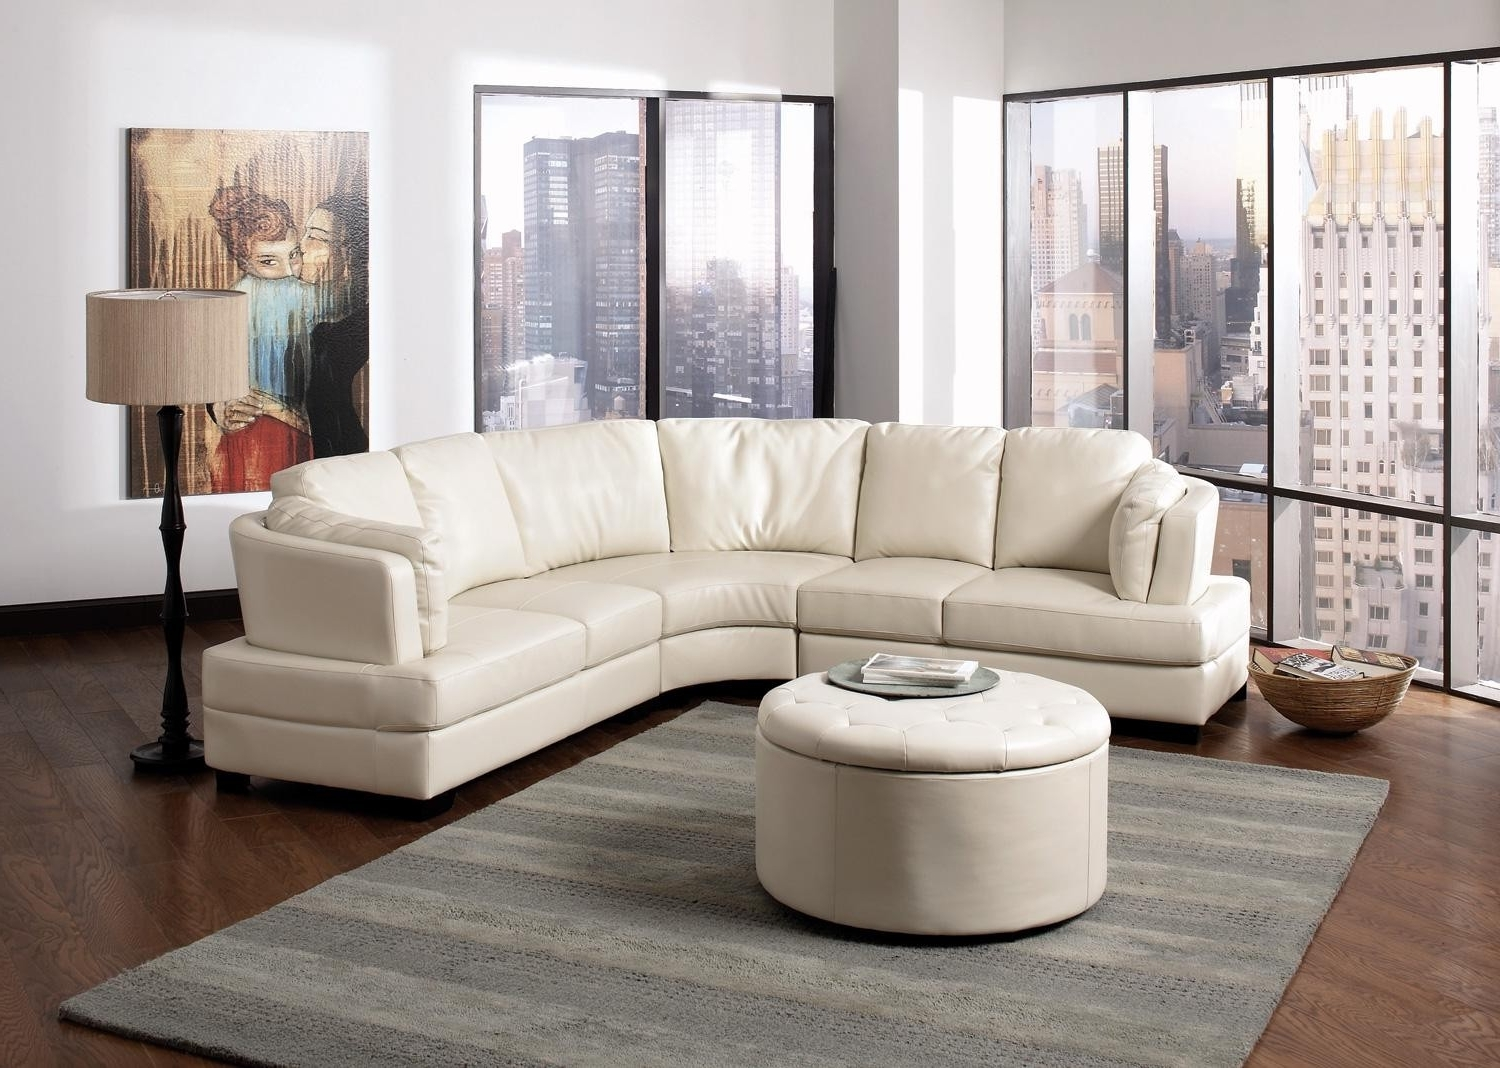 Bedroom: Awesome U Shaped Sectional Canada U Shaped Sectionals With Favorite Canada Sectional Sofas For Small Spaces (View 2 of 20)